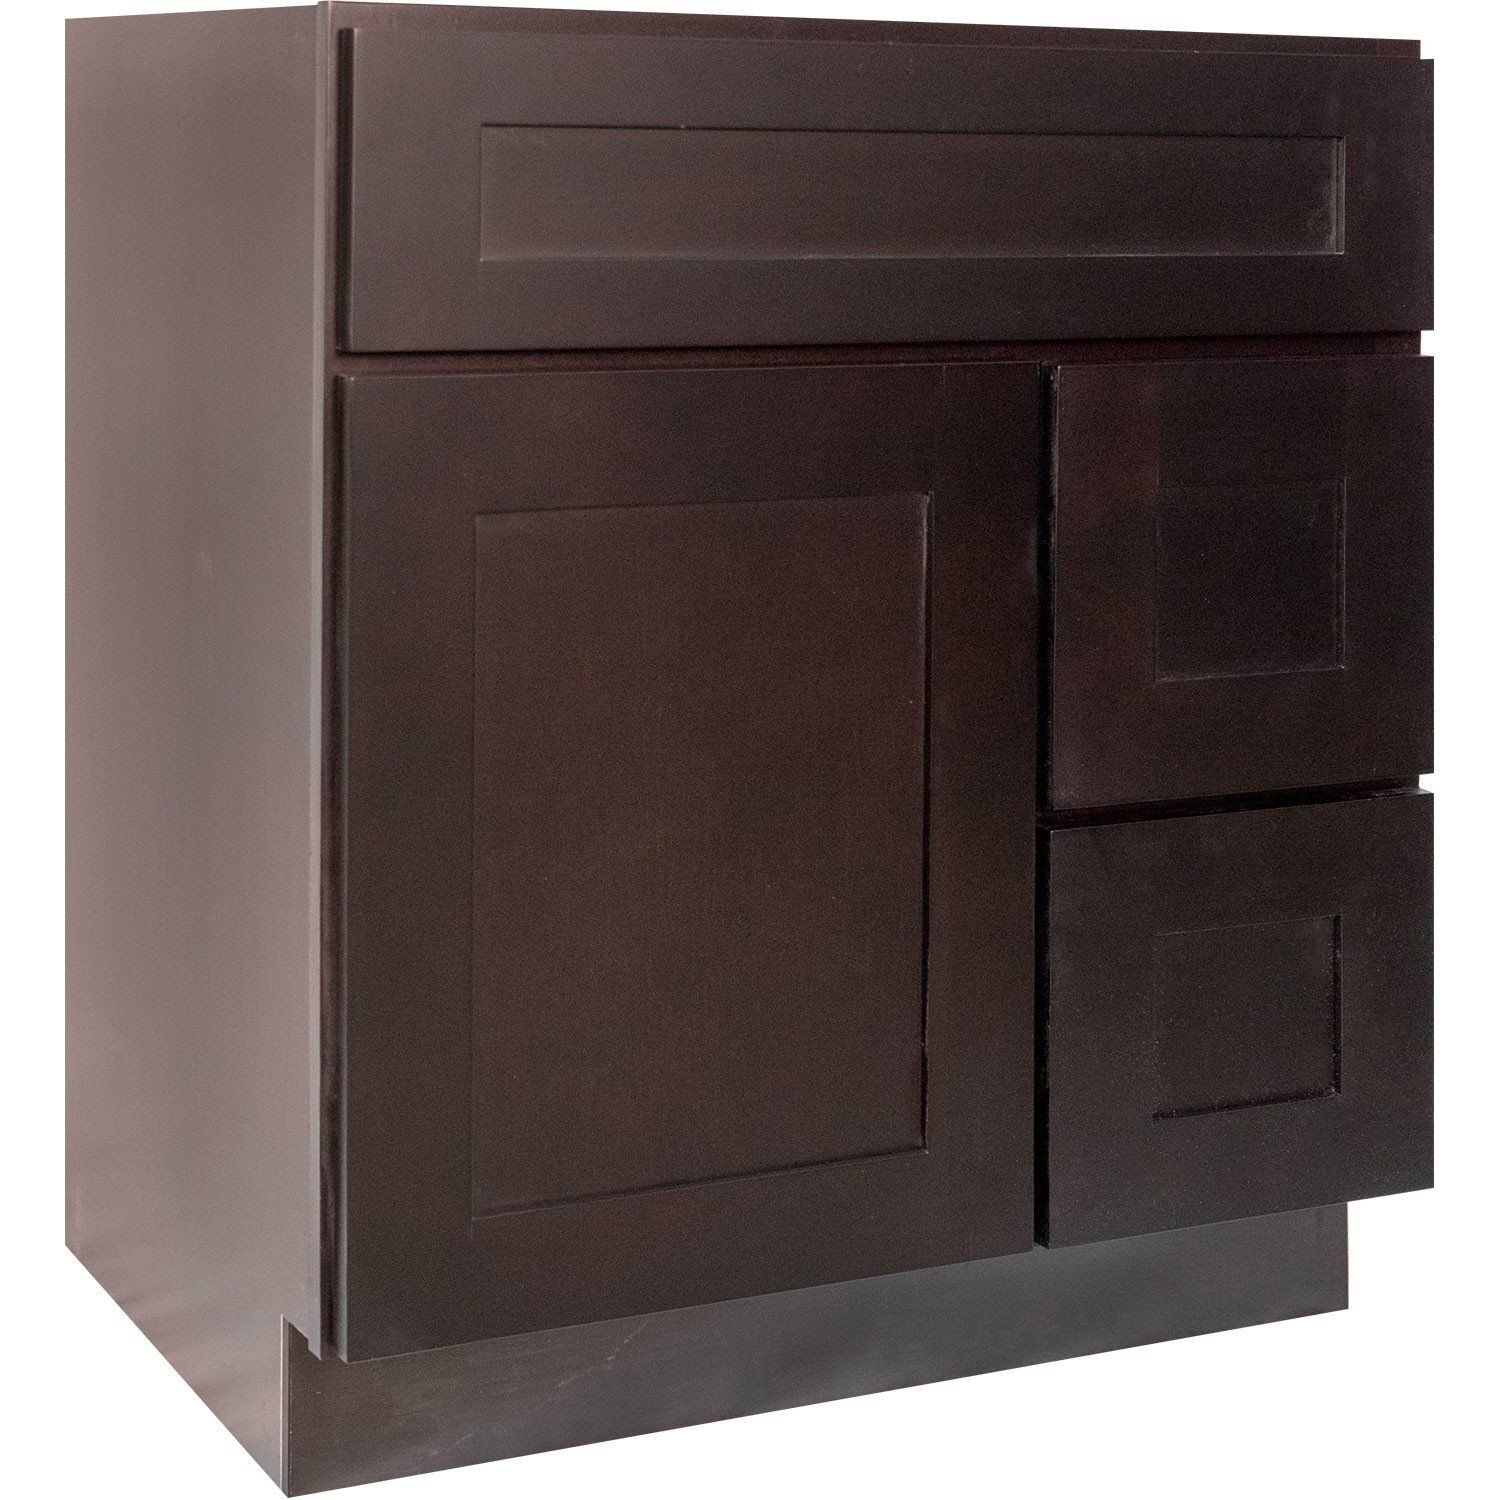 30 Inch Bathroom Vanity Single Sink Cabinet In Shaker Espresso Dark Brown With Bathrooms Remodel Full Bathroom Remodel Cheap Bathroom Remodel